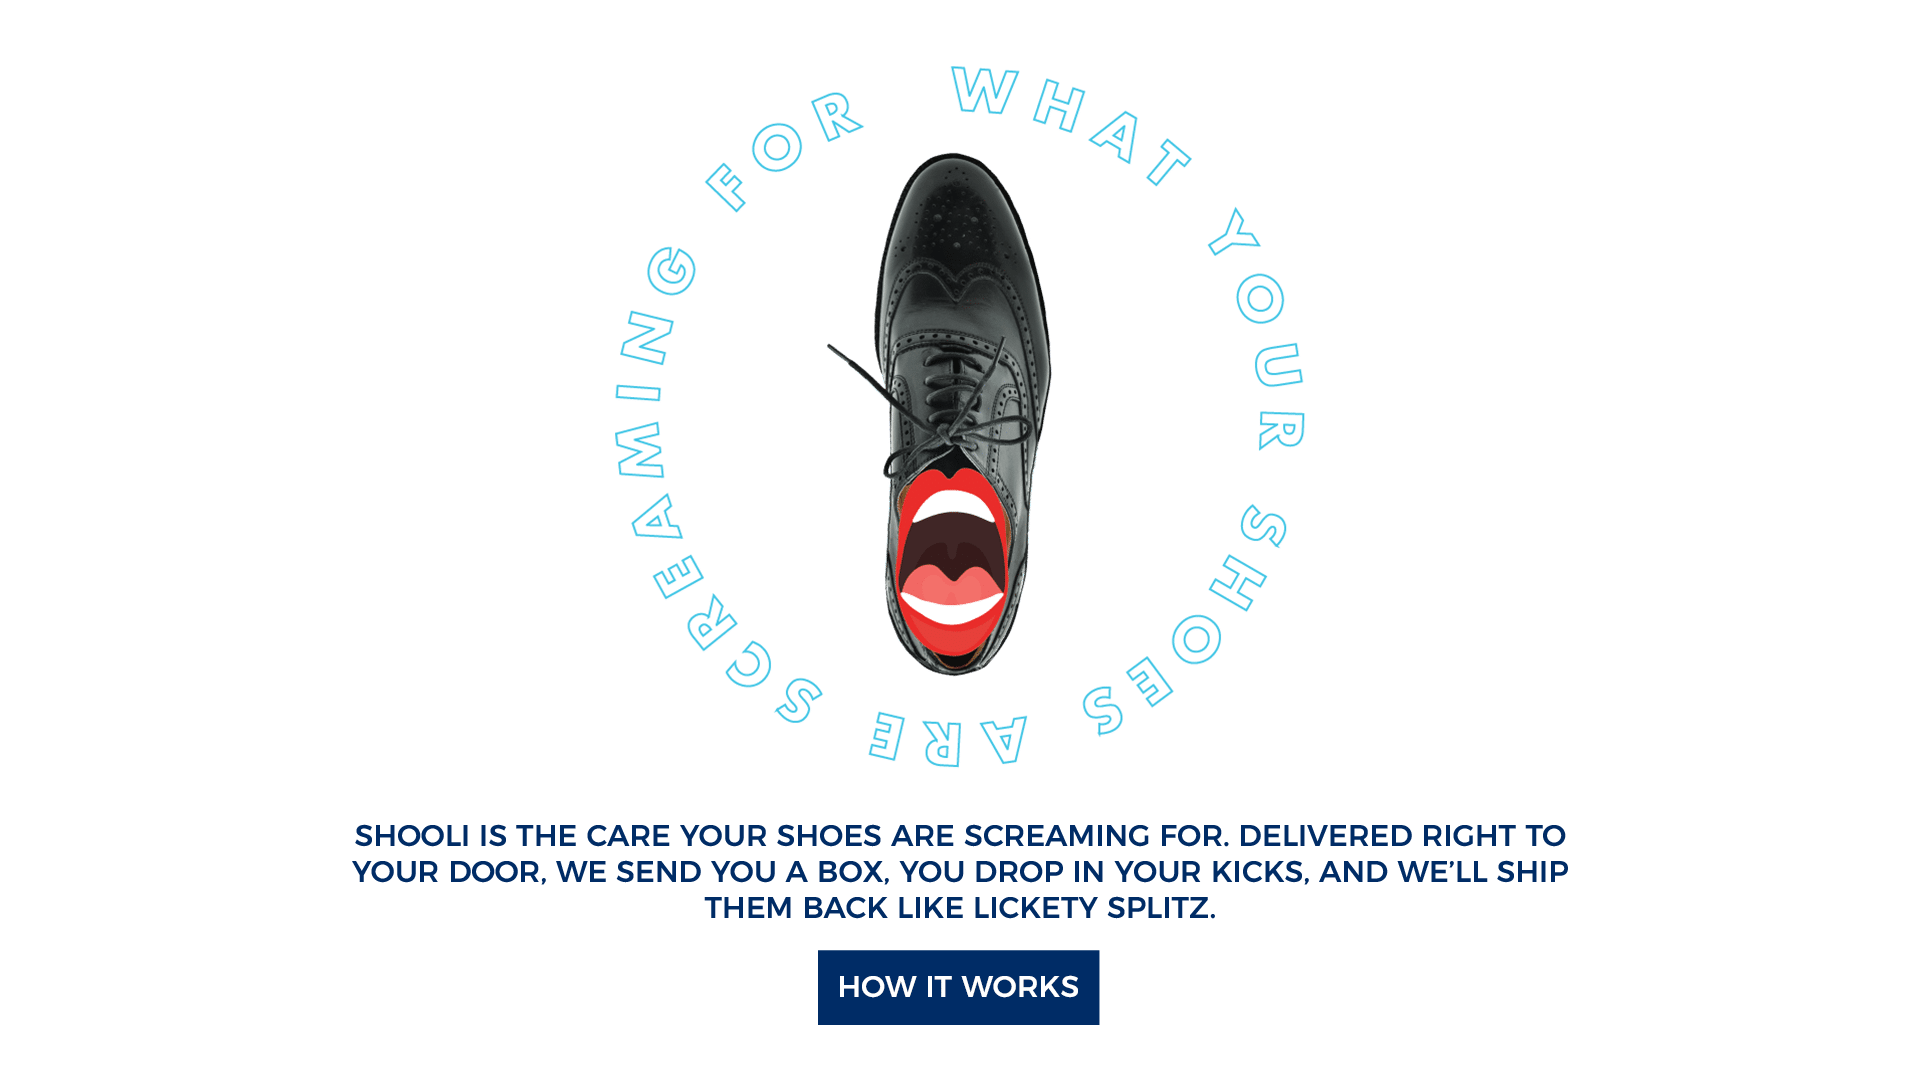 online shoe shine and shoe repair service